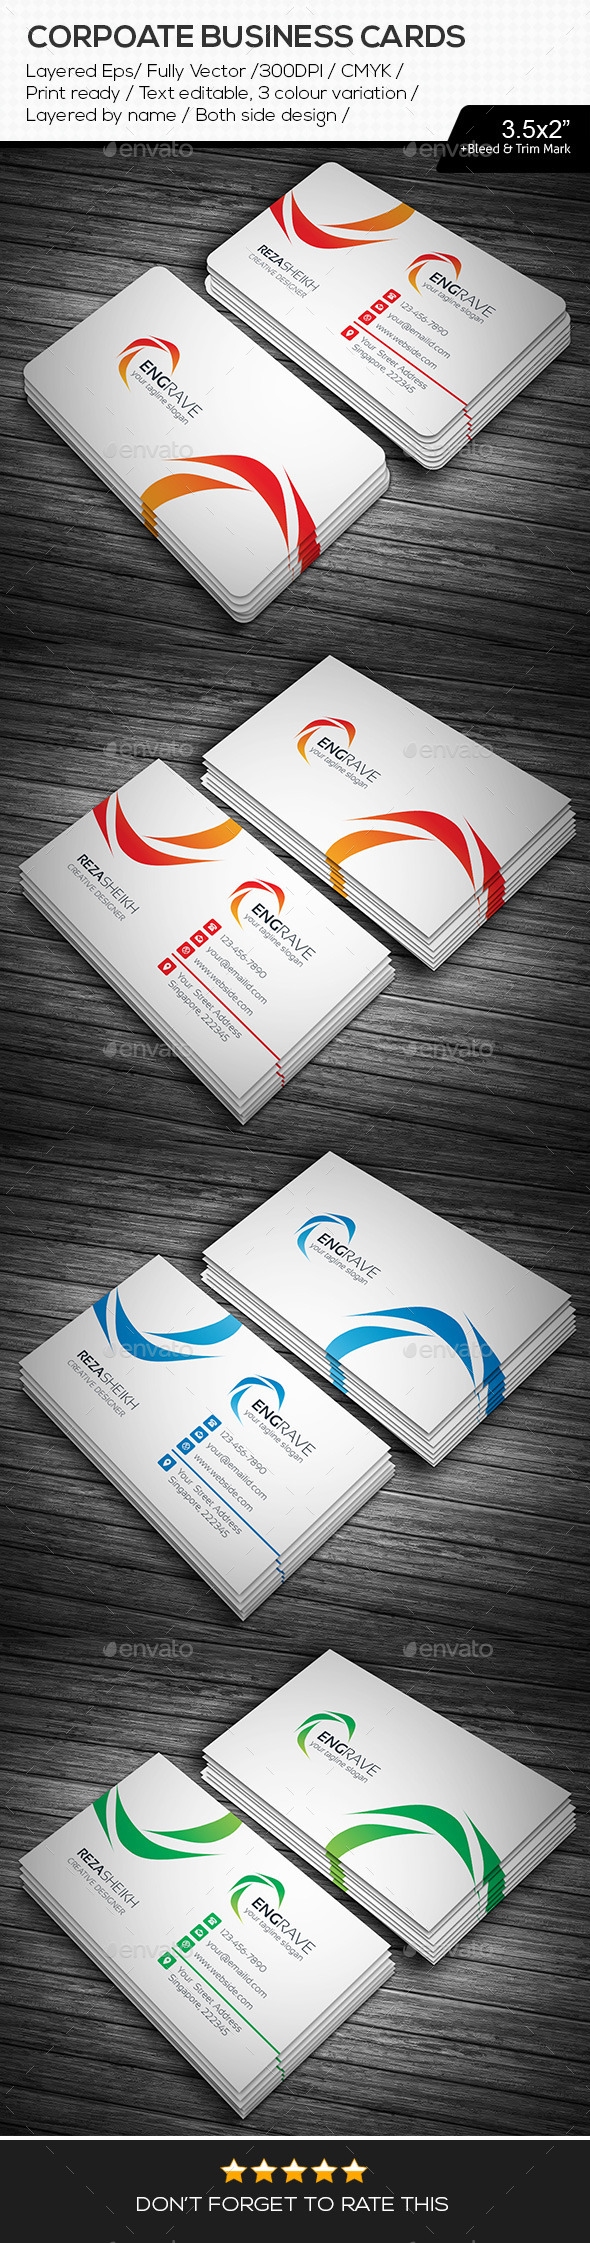 GraphicRiver Engrave Corporate Business Cards 11321706